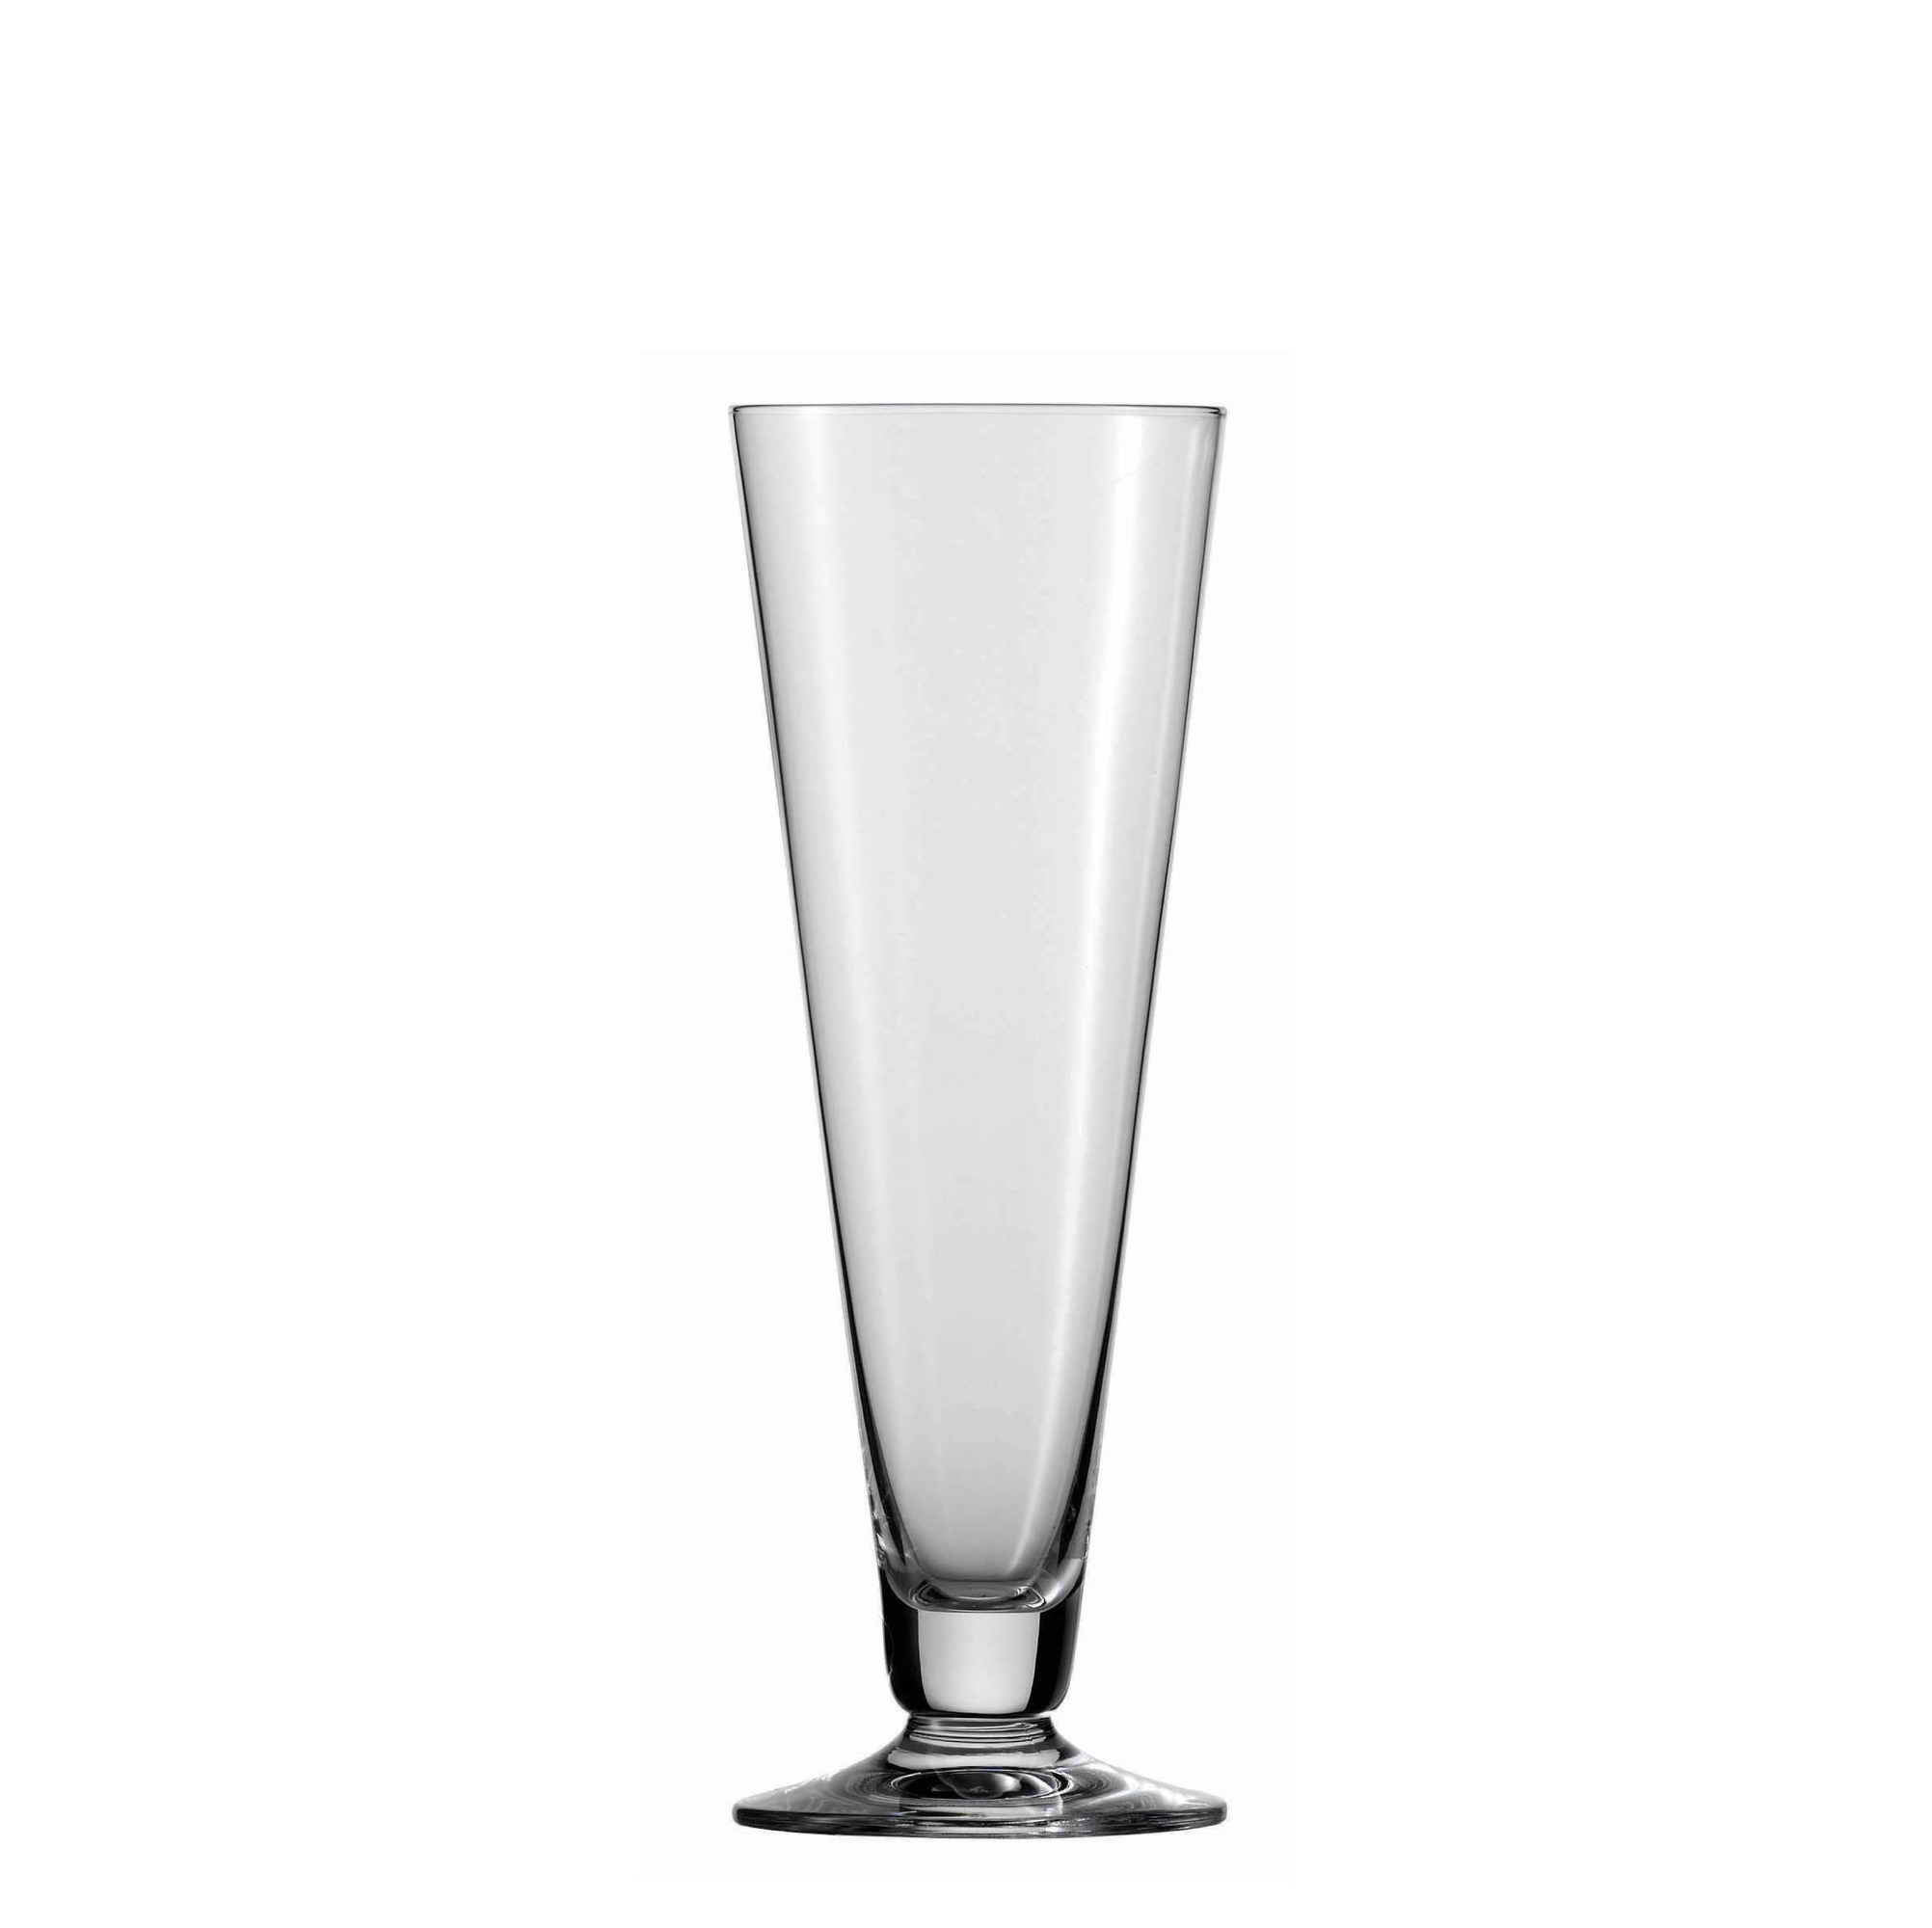 Schott Retailers | Schott Zwiesel Wine Glasses | Commercial Tableware